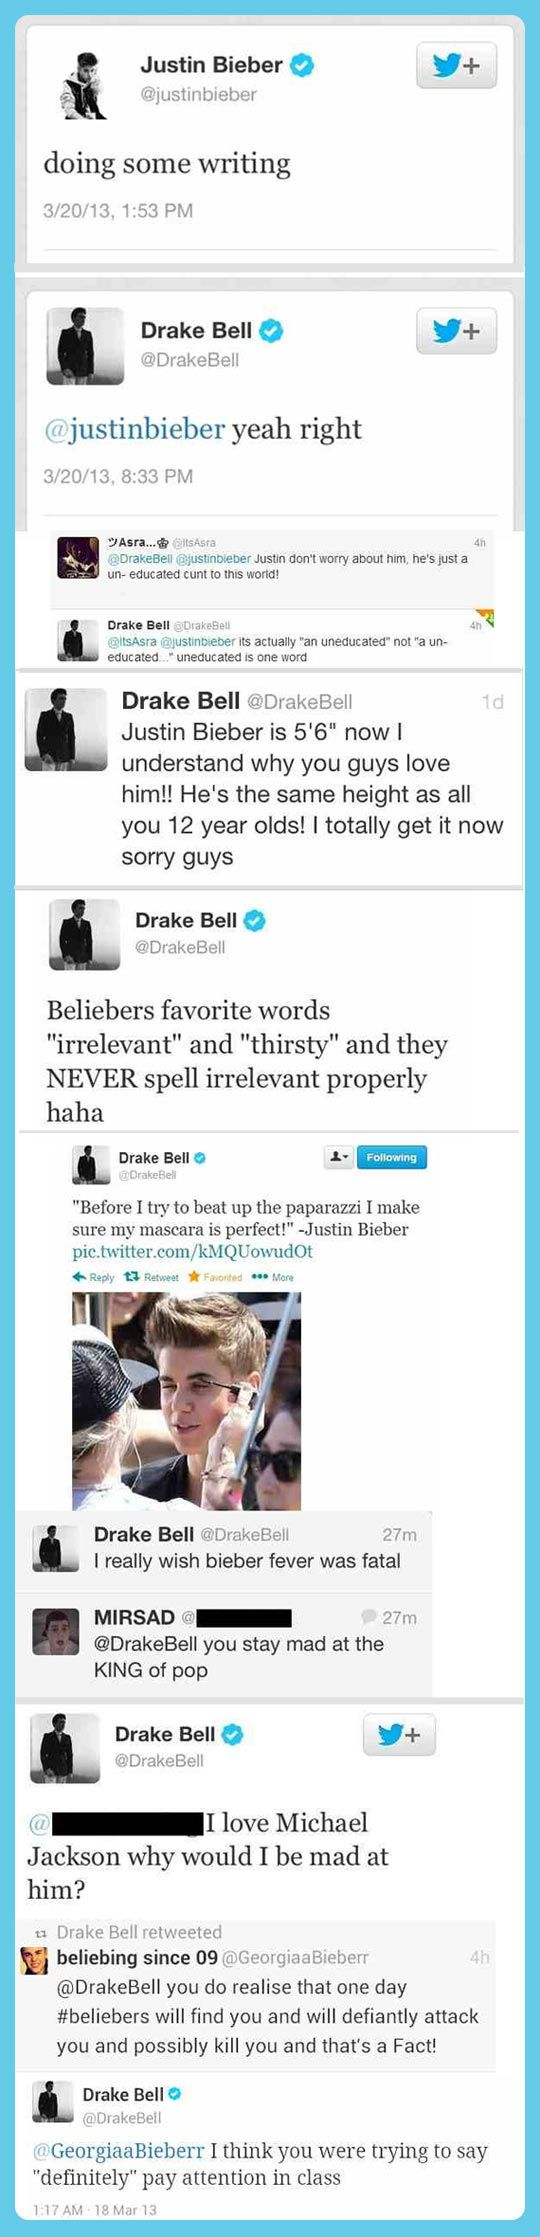 This is hilarious. I loveeeee drake bell. And don't we all wish Bieber Fever was fatal